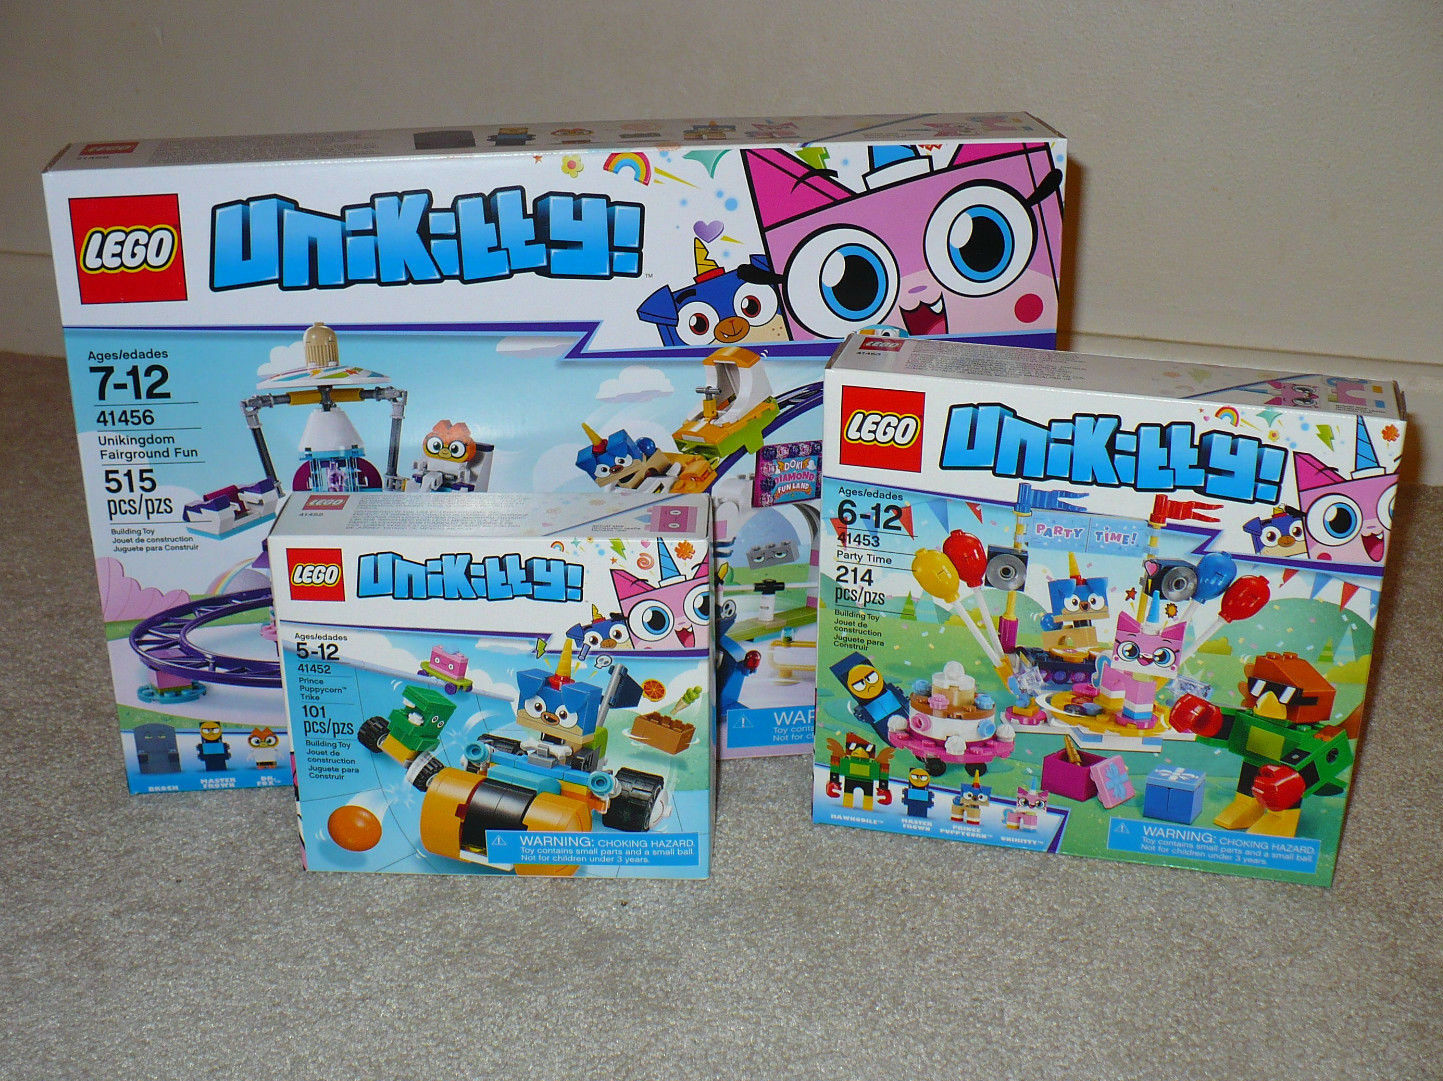 Nouveau Lego Unikitty unikingdom forains Fun puppycorn Trike Party 41456 41452 53